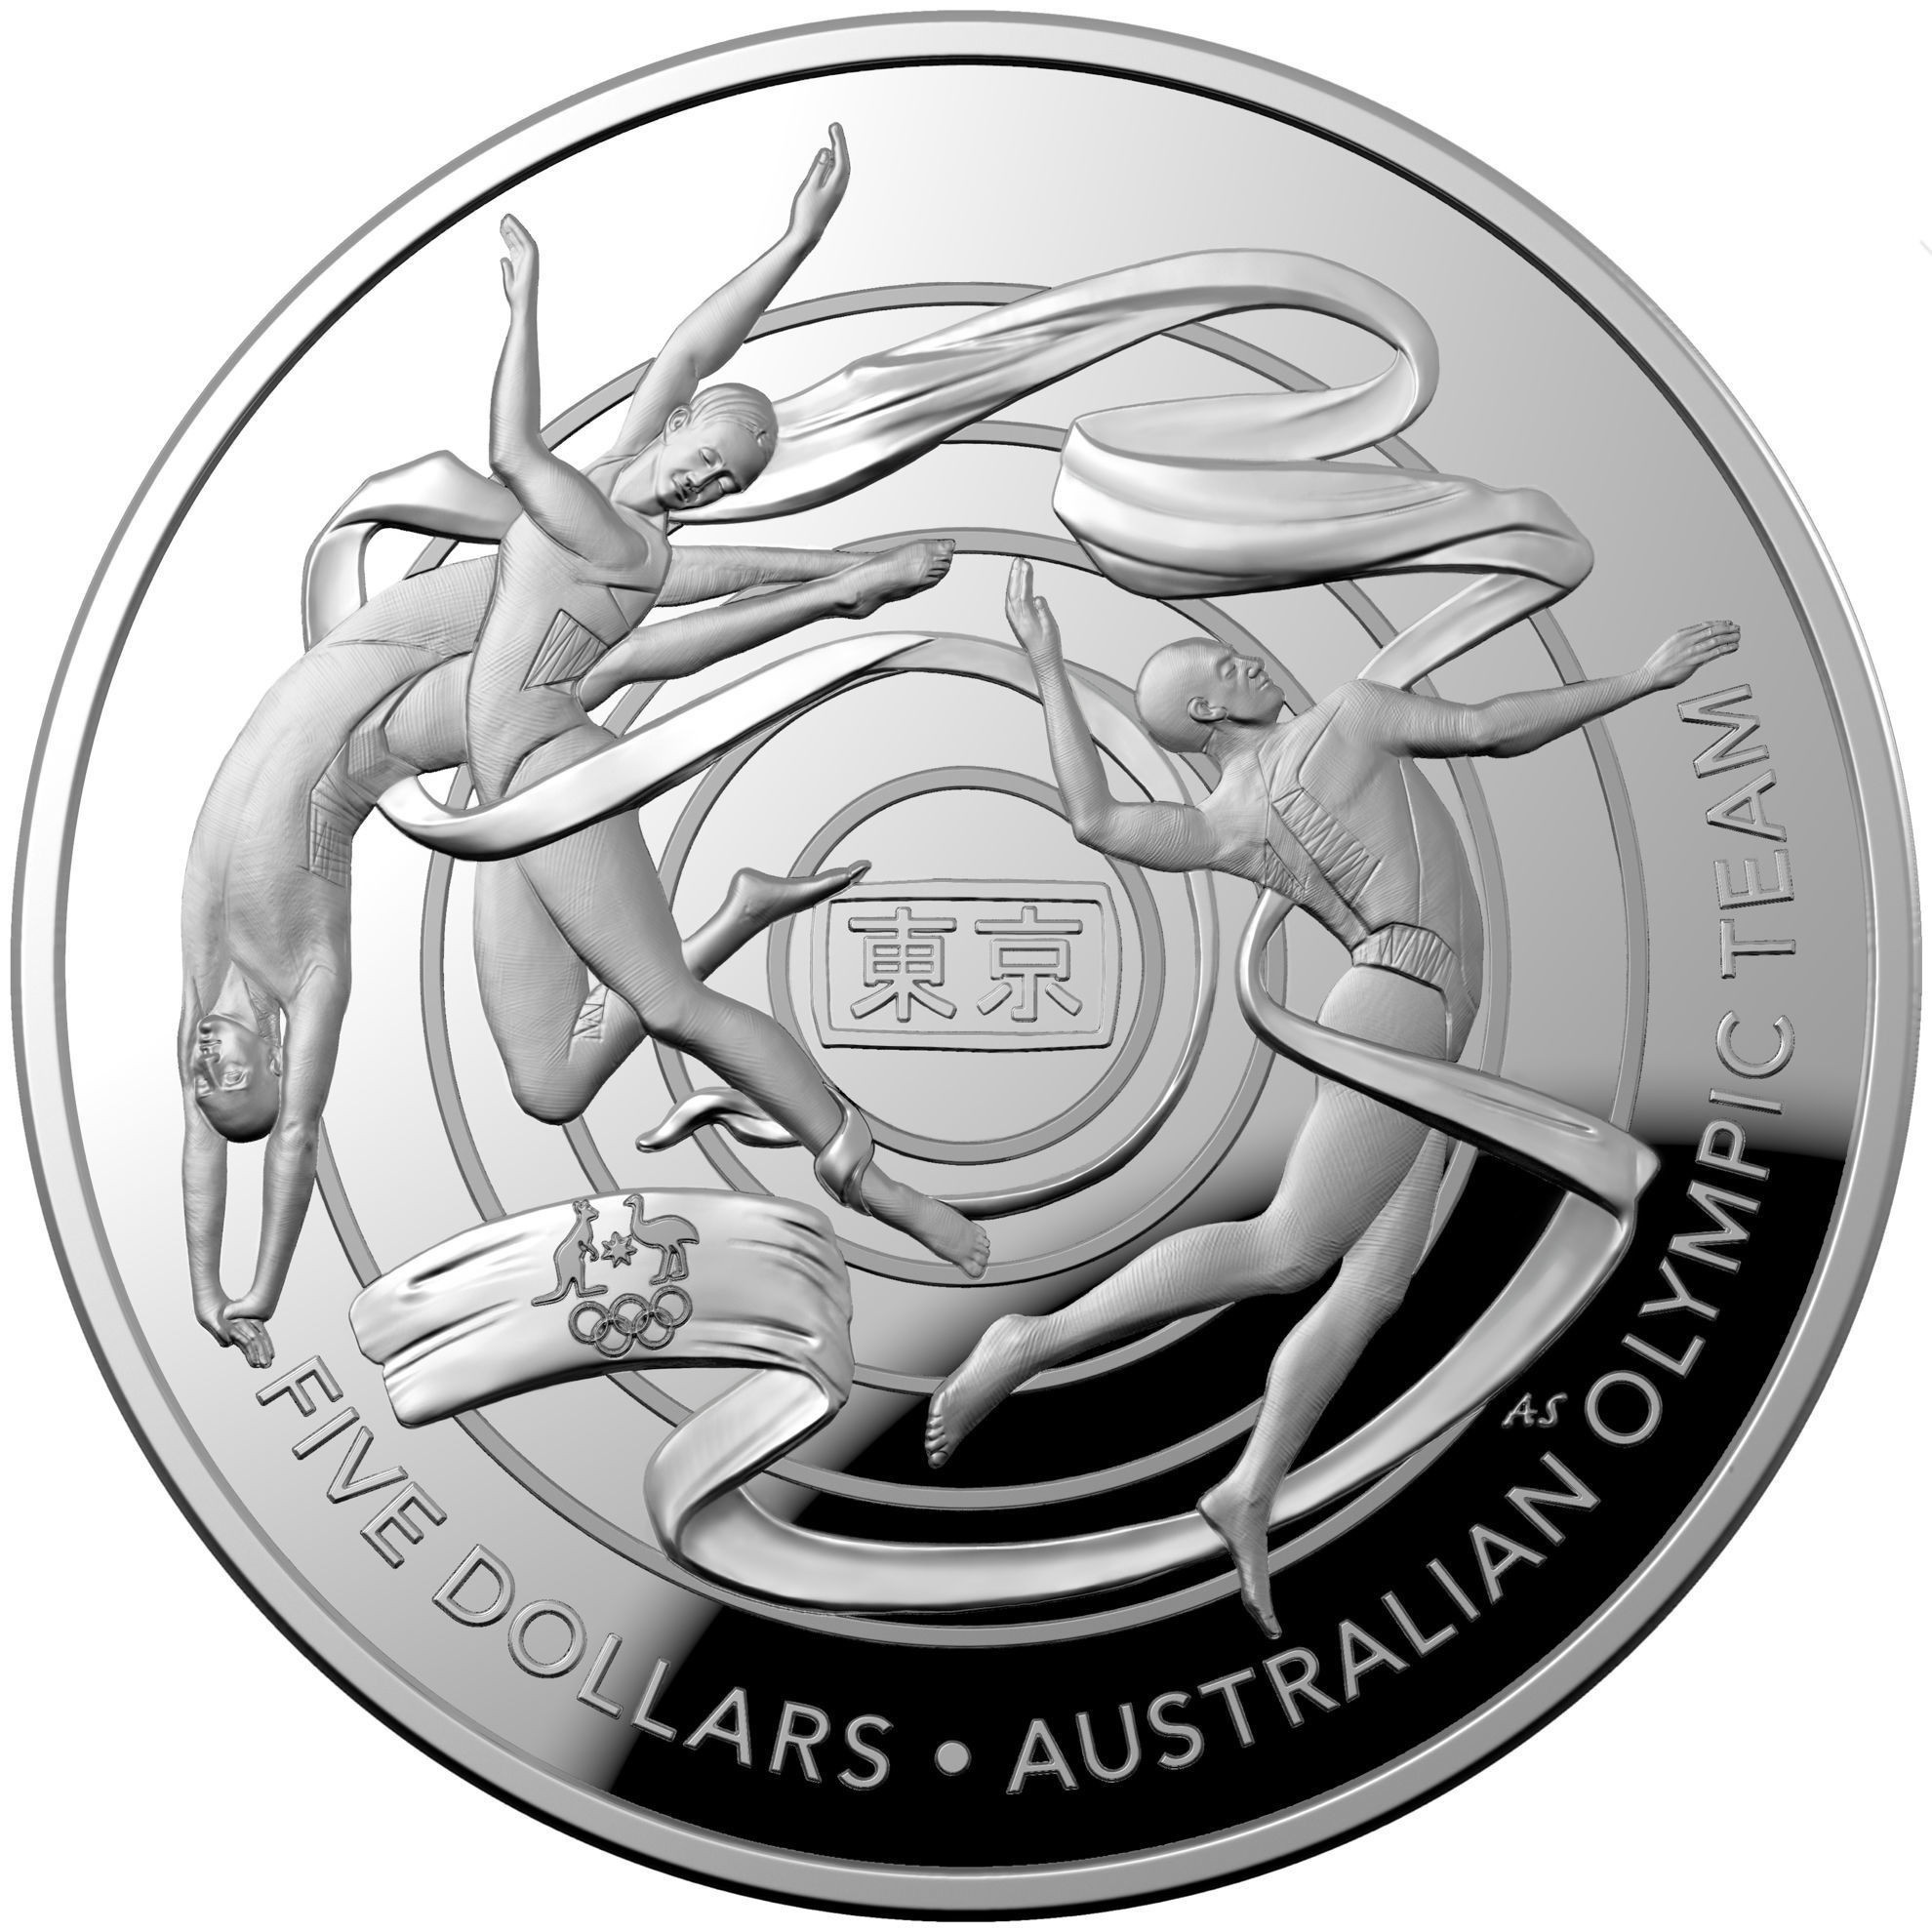 Aleksandra Stokic has designed the new AUD$5 Olympic coin for the Royal Australian Mint ©Royal Australian Mint